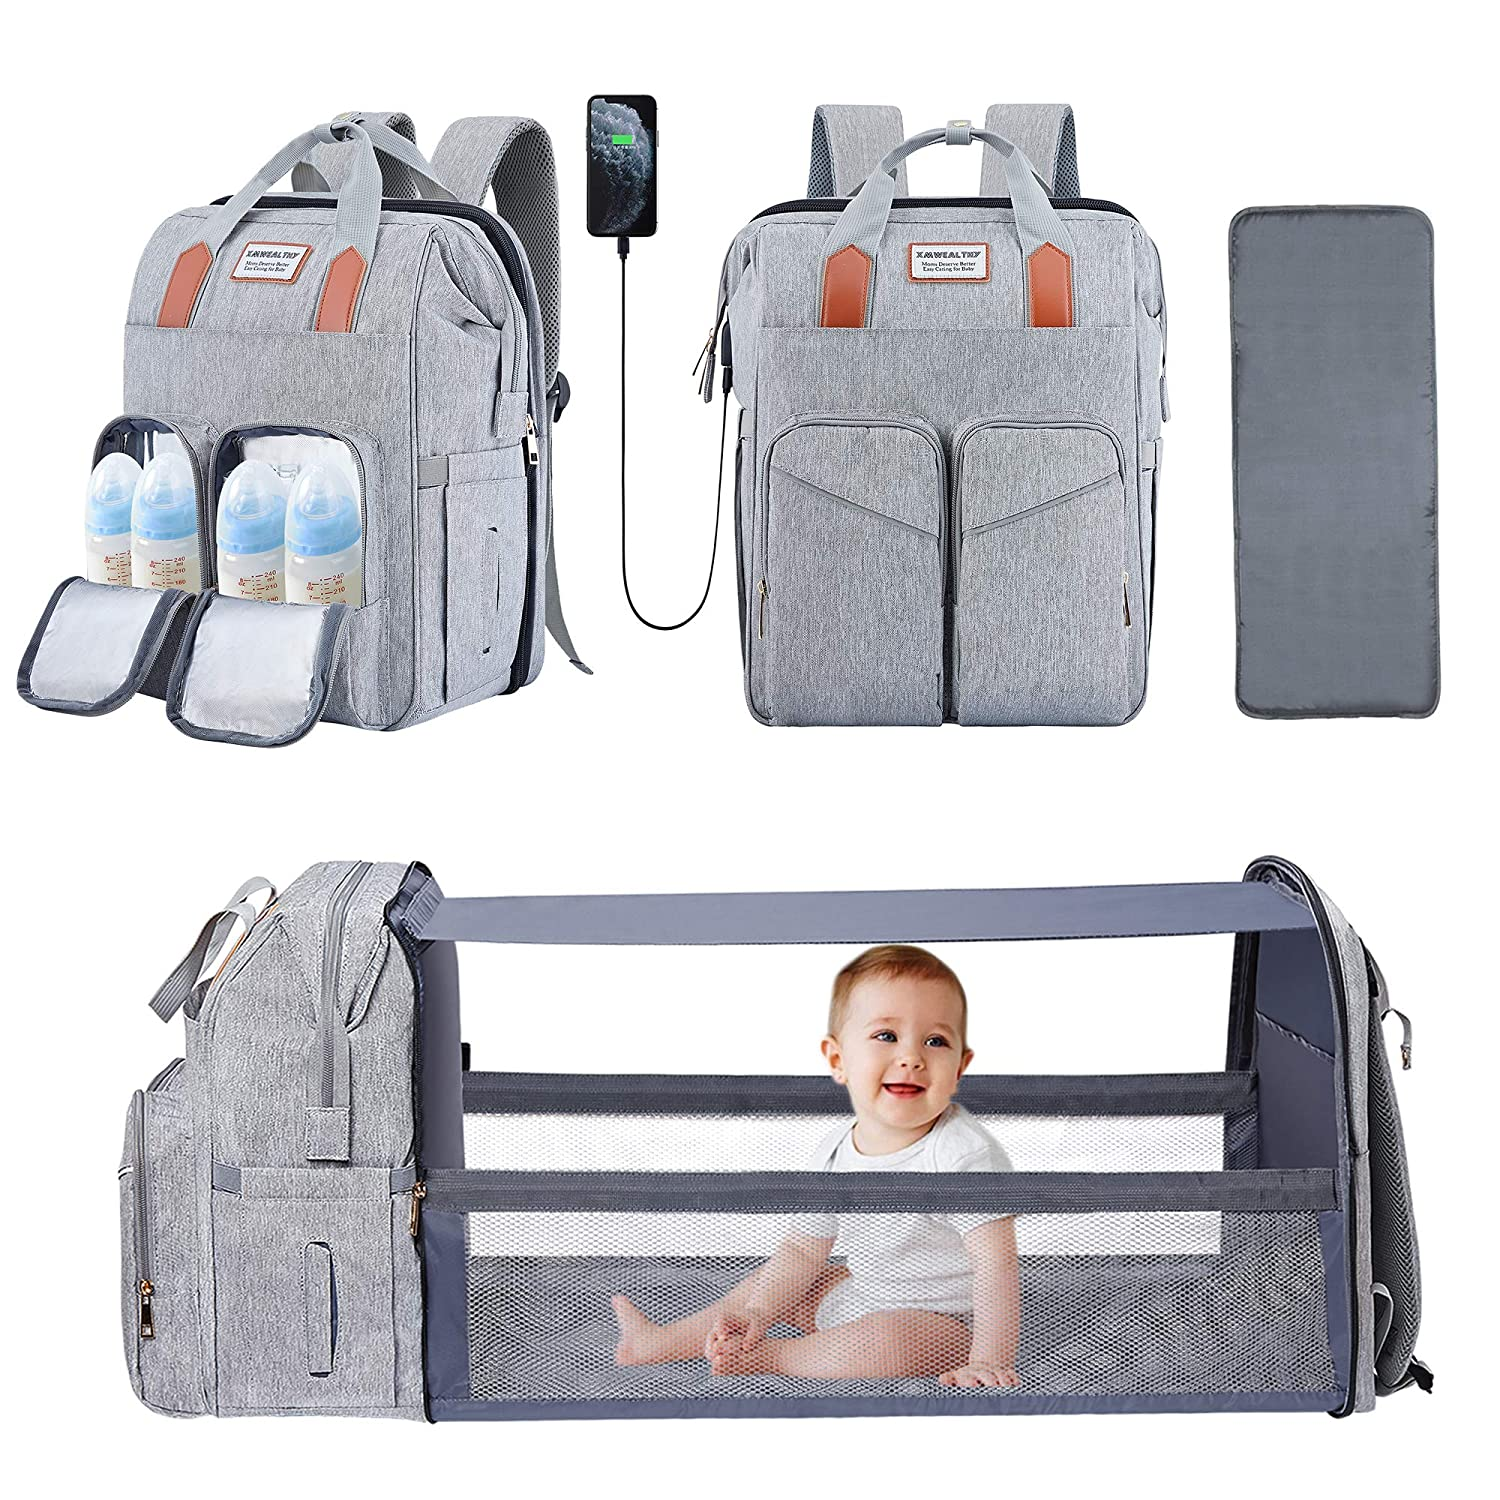 Diaper Bag Backpack with Changing Station Portable Baby Diaper Bags Travel Waterproof Baby Boy Diaper Bag with Insulated Pockets, USB Charging Port, Stroller Straps, Grey